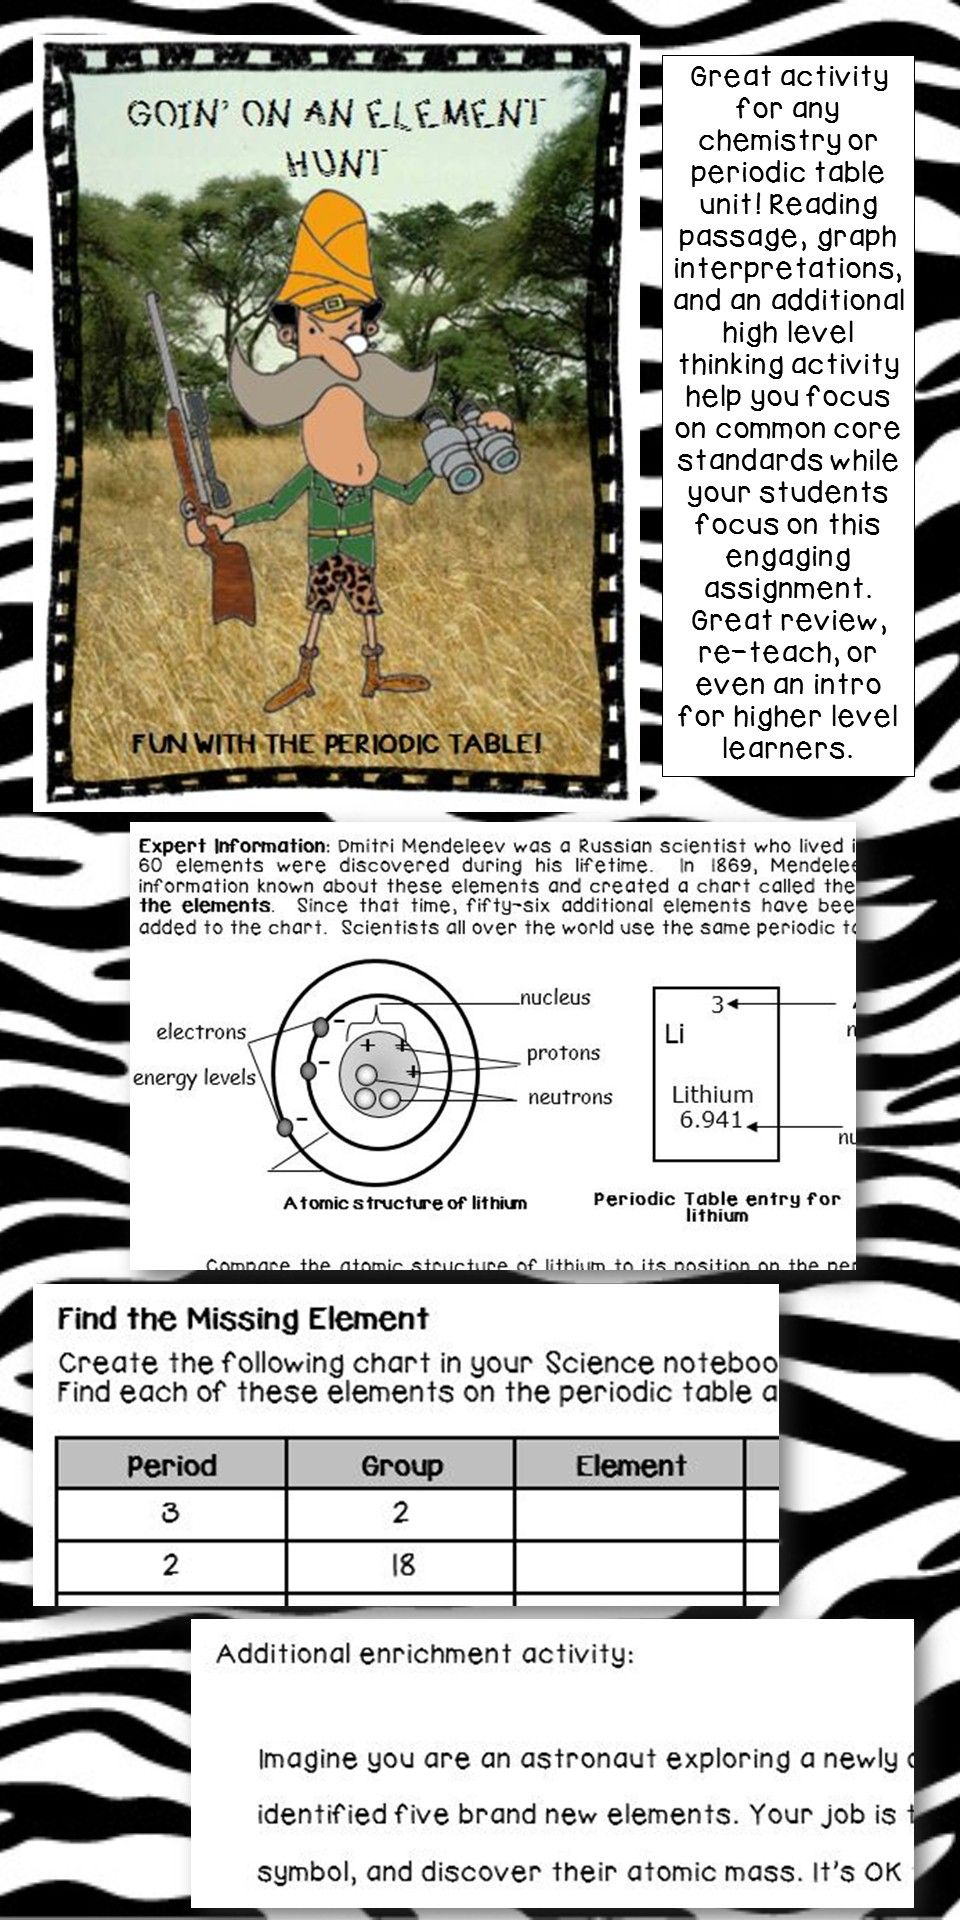 fun elemental mystery activity element periodic table atom jr high middle school periodic table knowledge and mystery - Periodic Table Discovery Activity